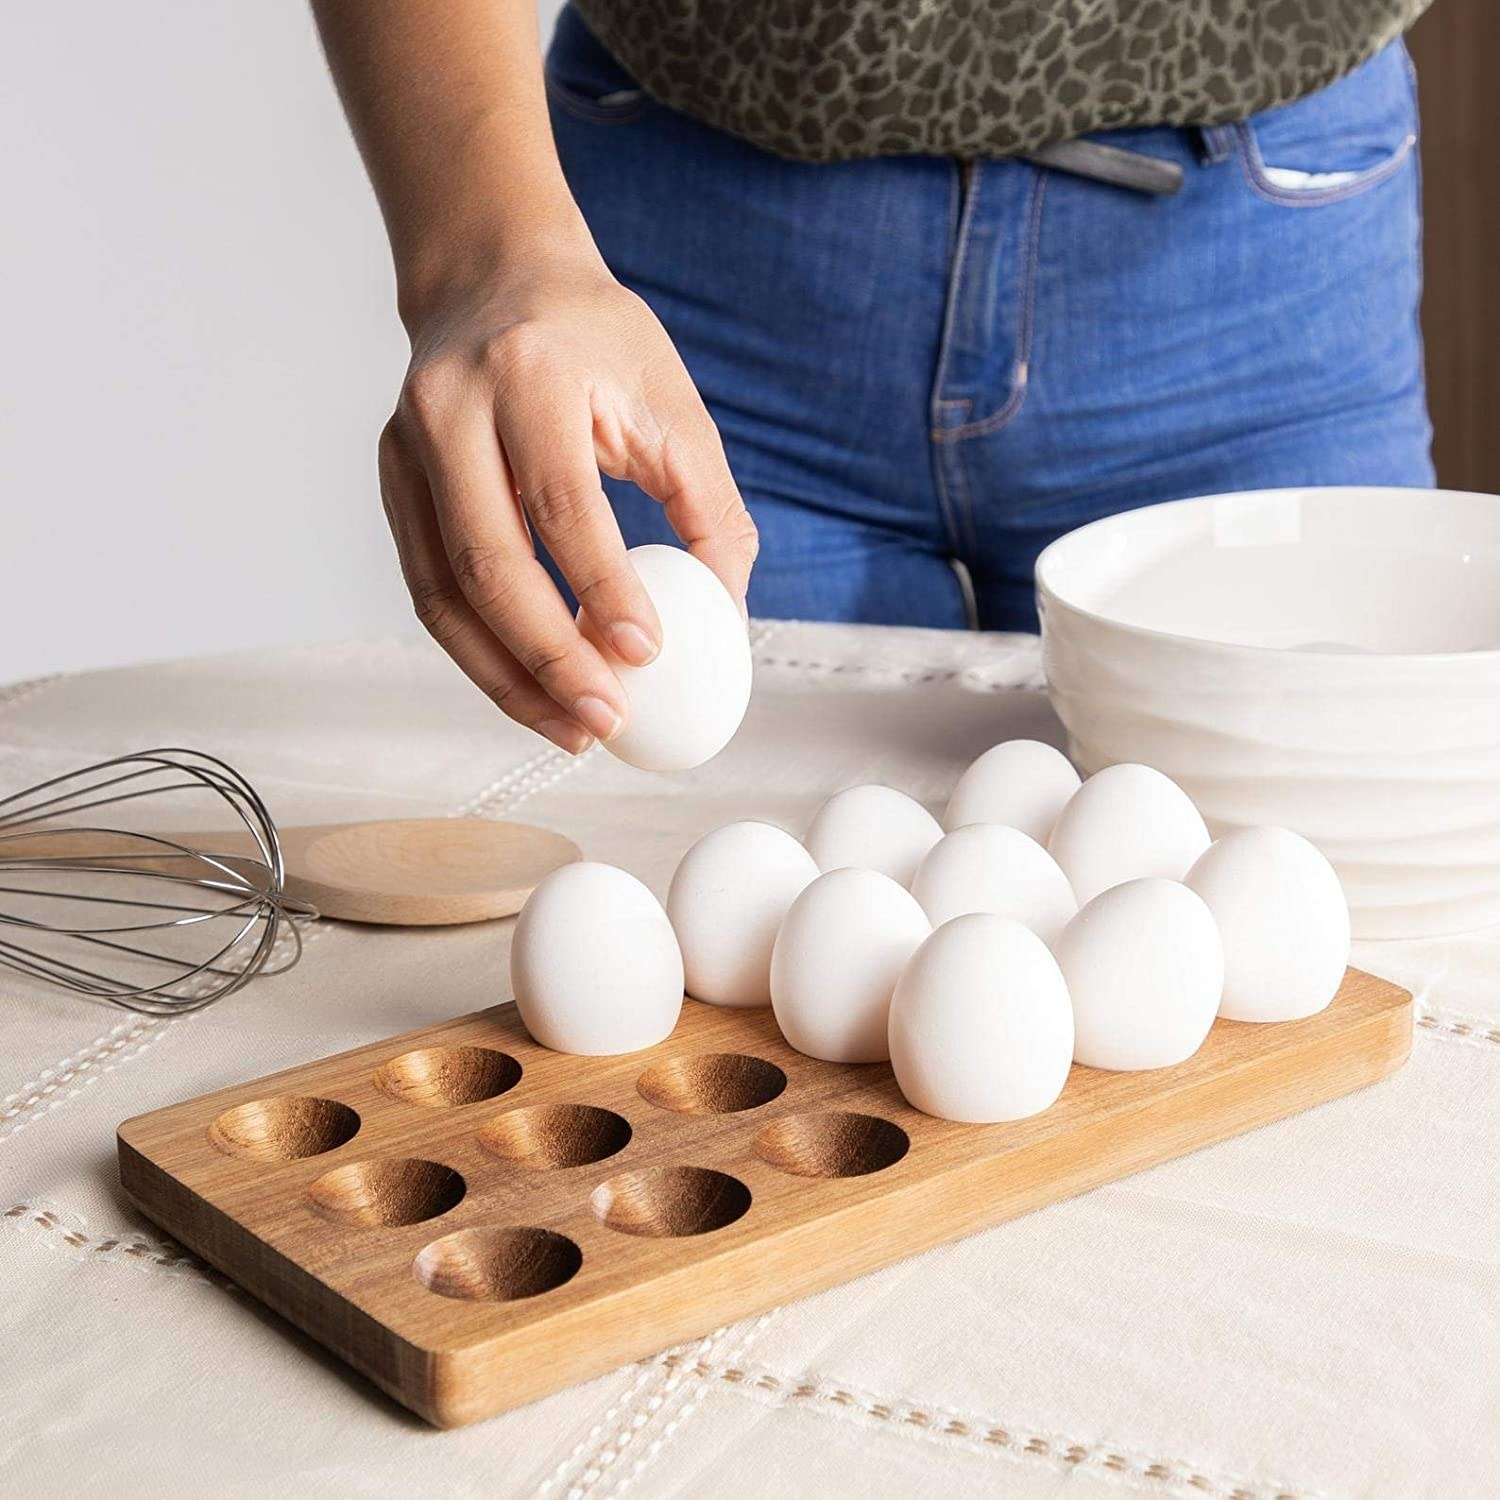 A model grabbing an egg from the wooden holder which can hold 18 eggs